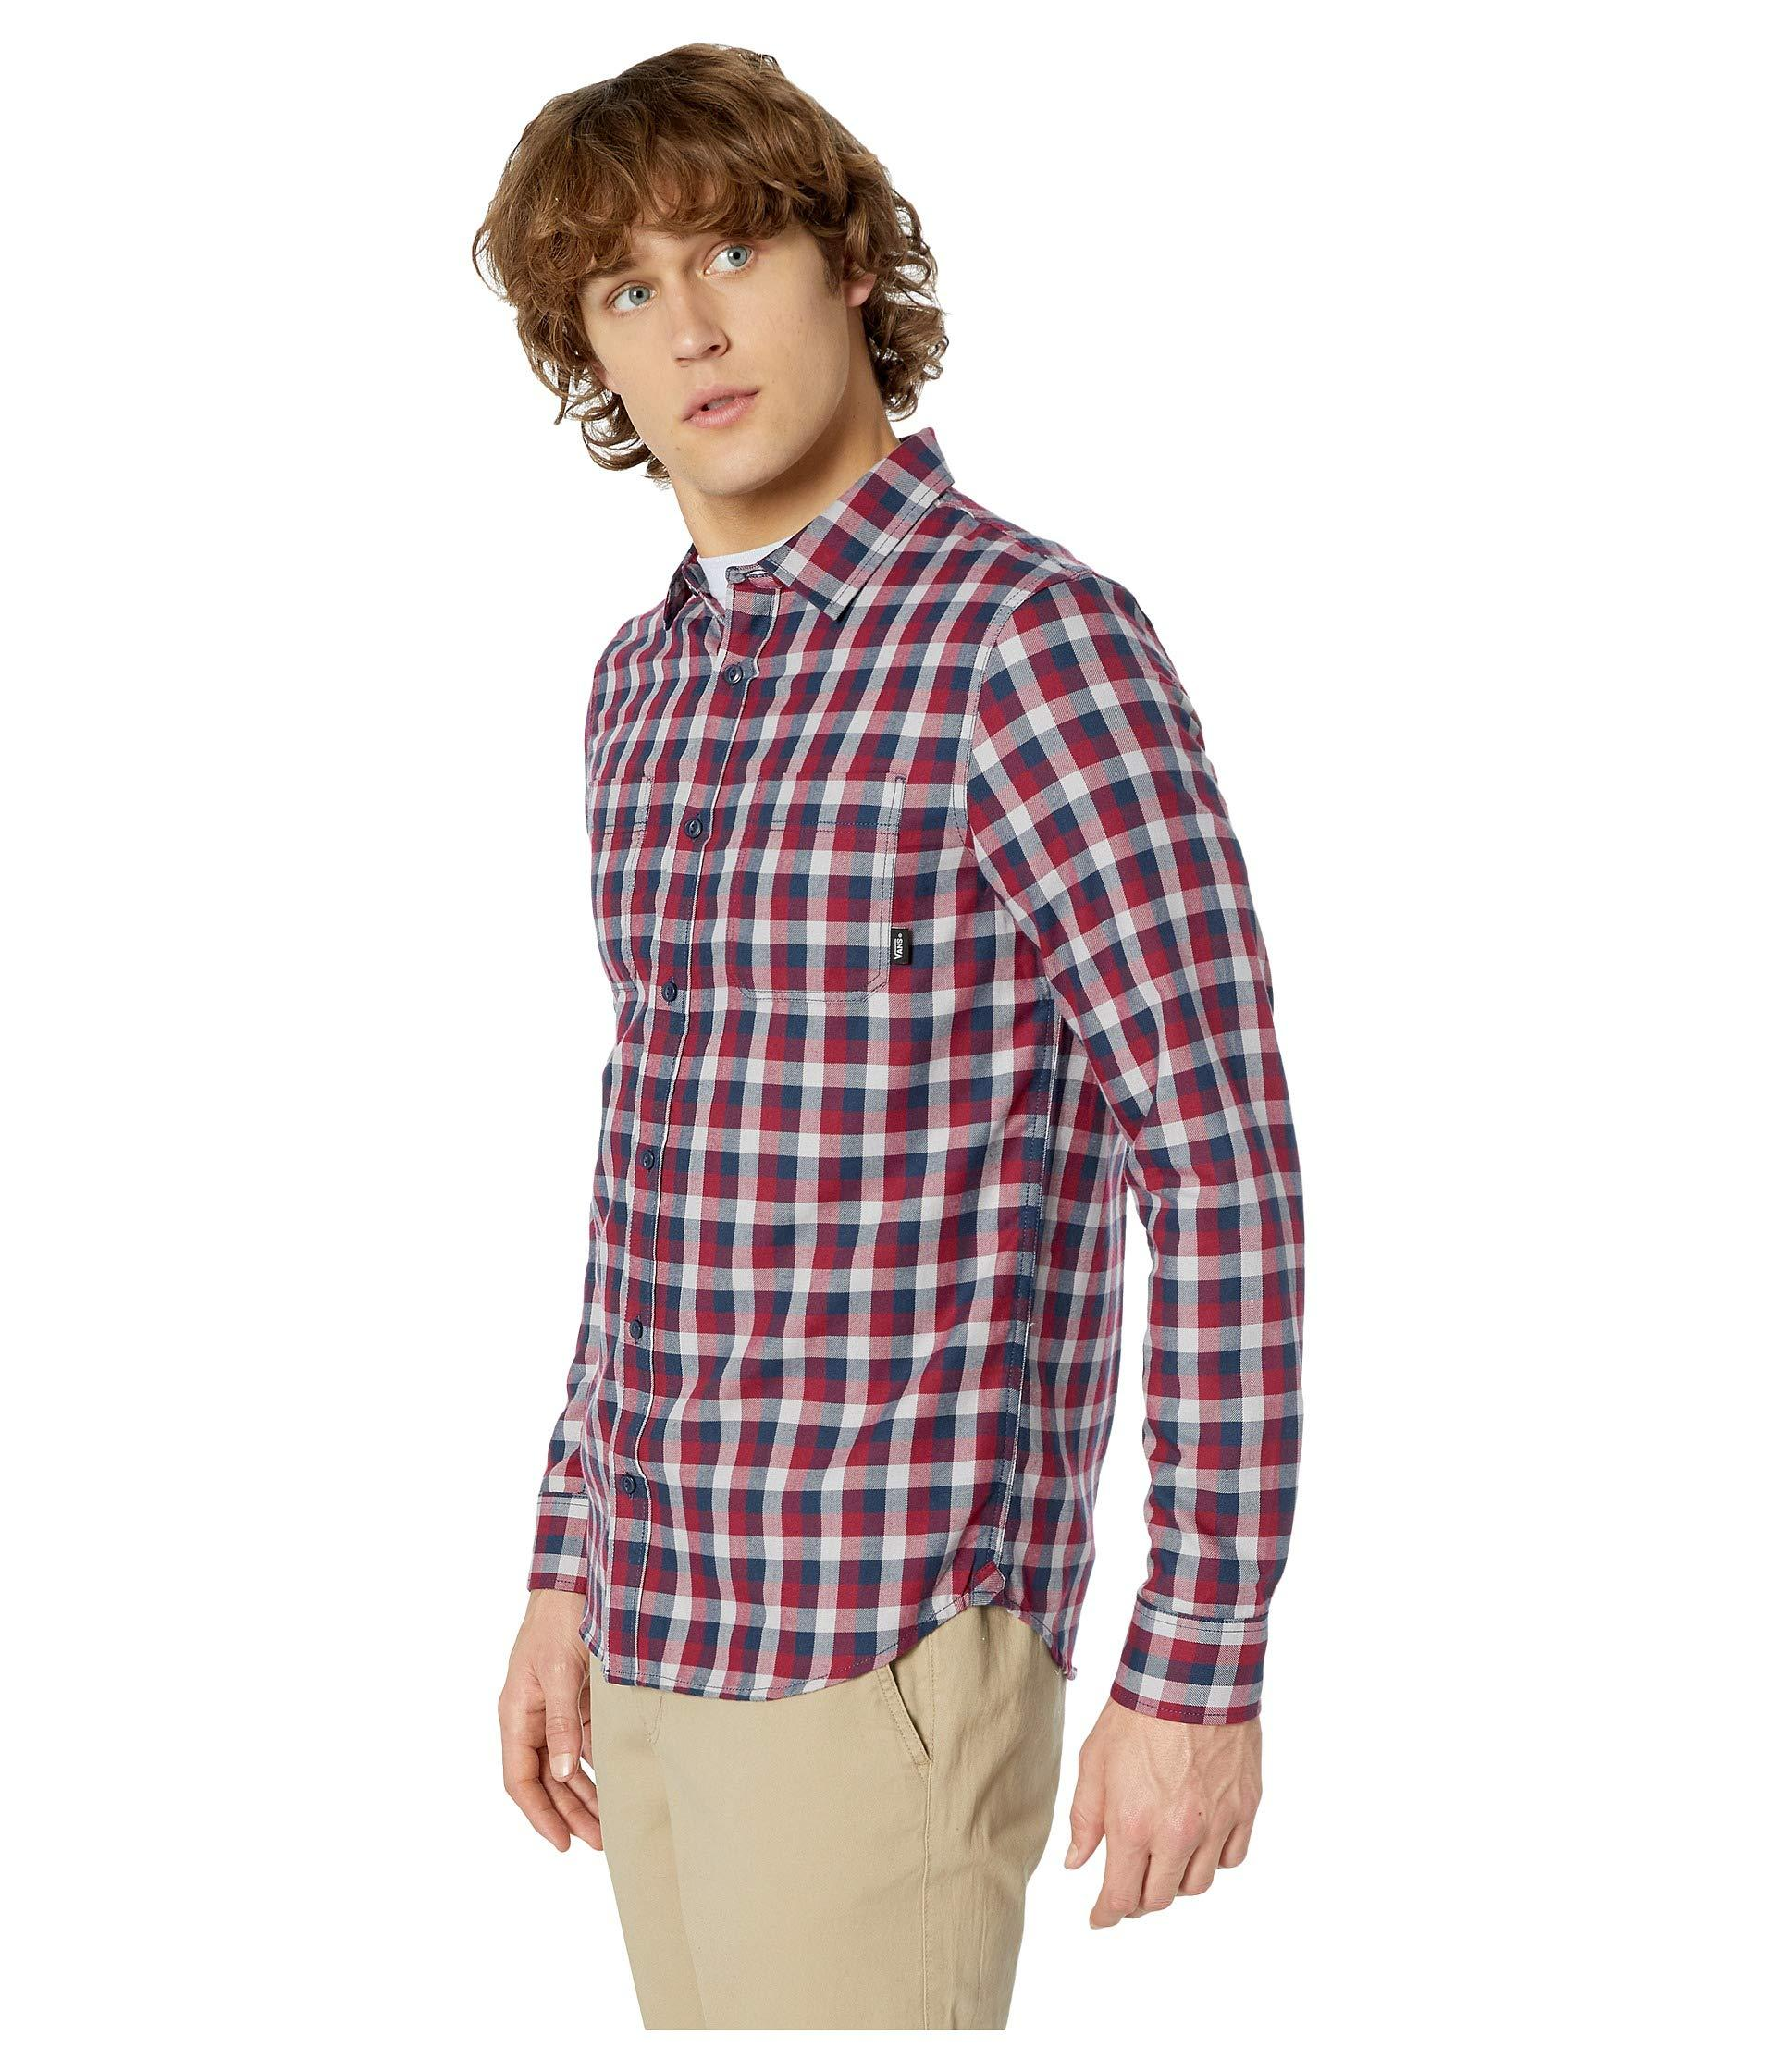 c0a69fcf34 Lyst - Vans Alameda Ii Long Sleeve Woven Top (rhumba Red dress Blues) Men s Long  Sleeve Button Up in Red for Men